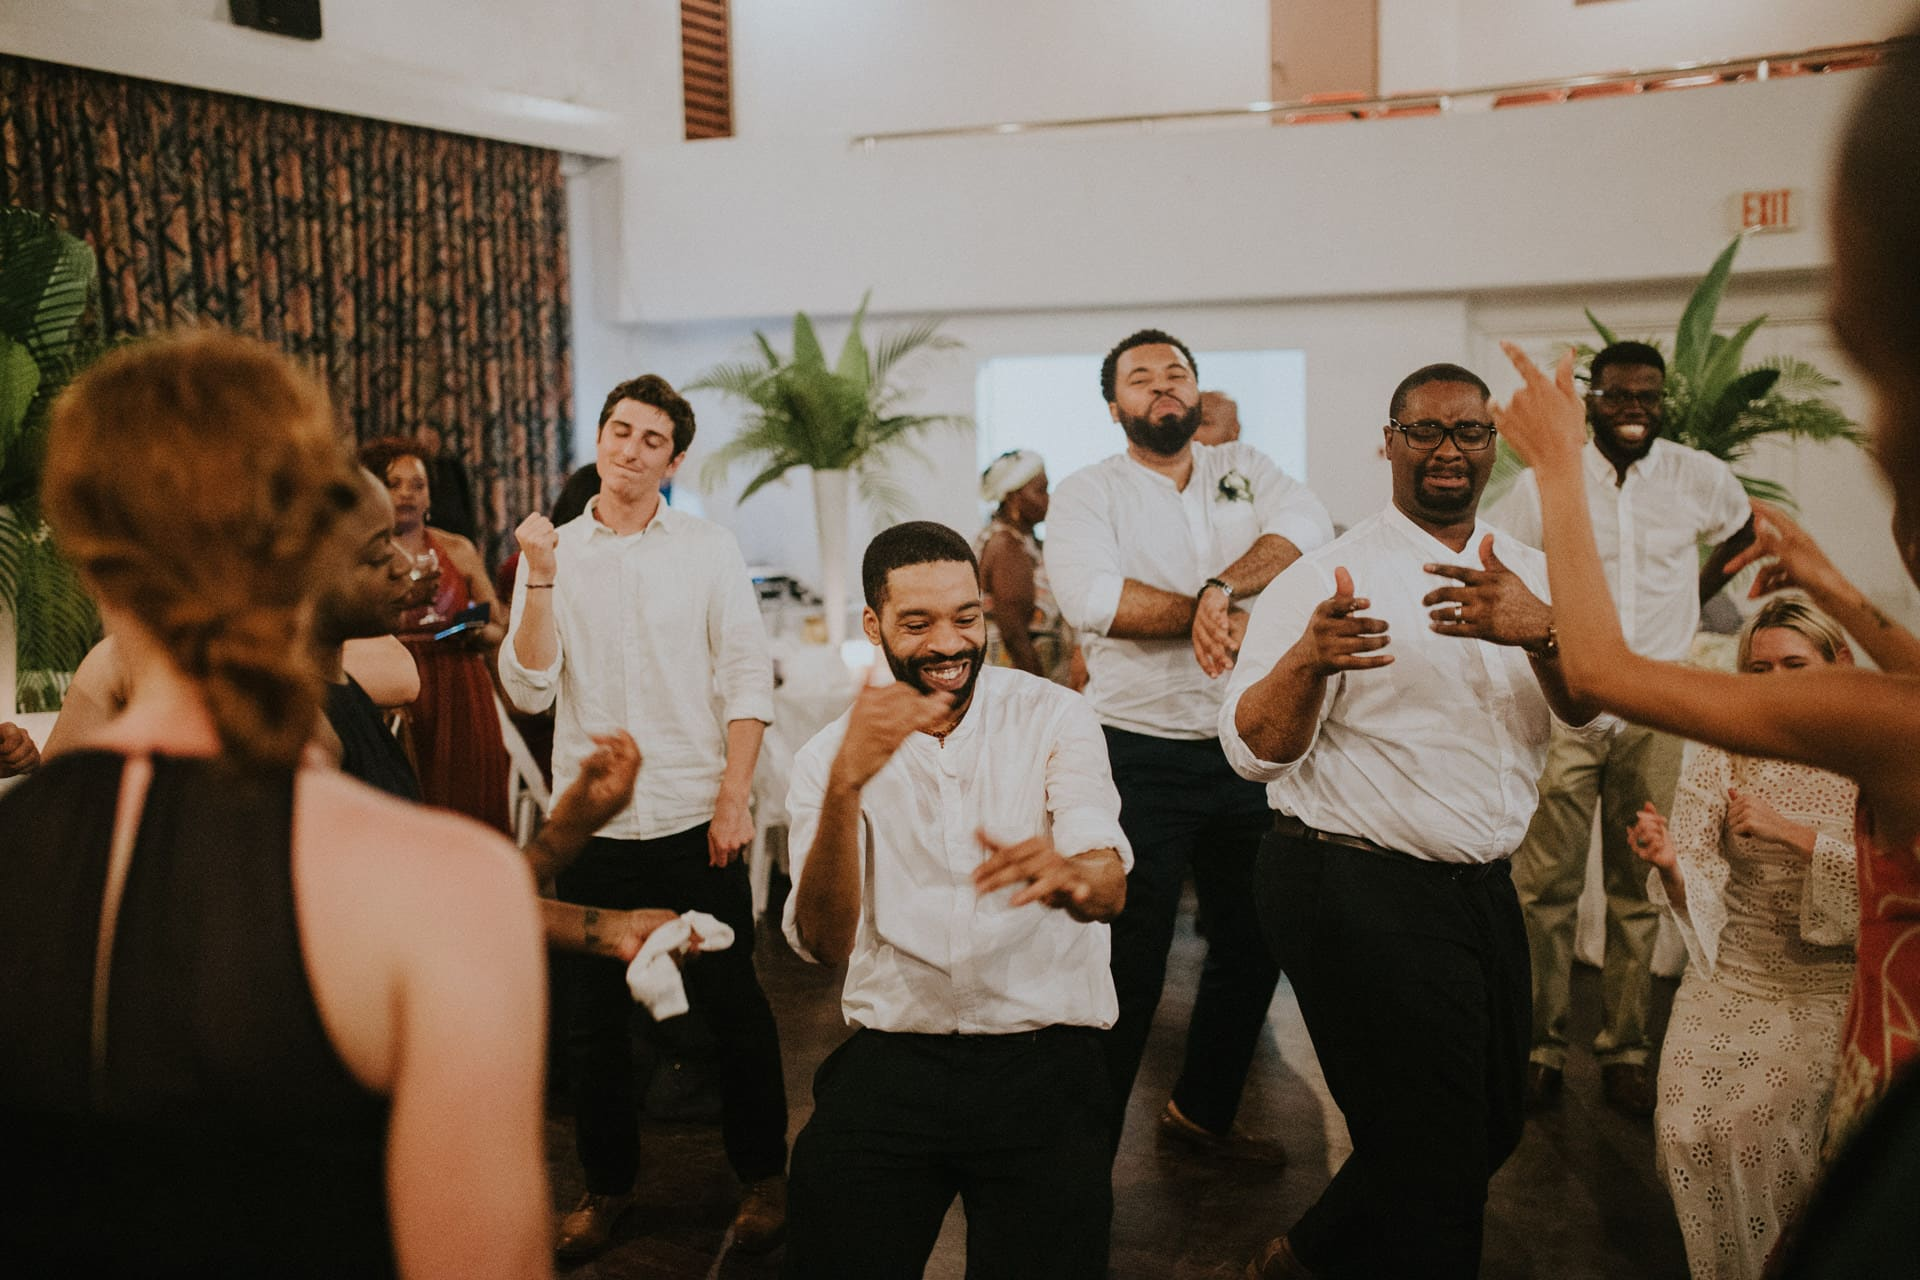 Groomsmen are dancing at the wedding party.